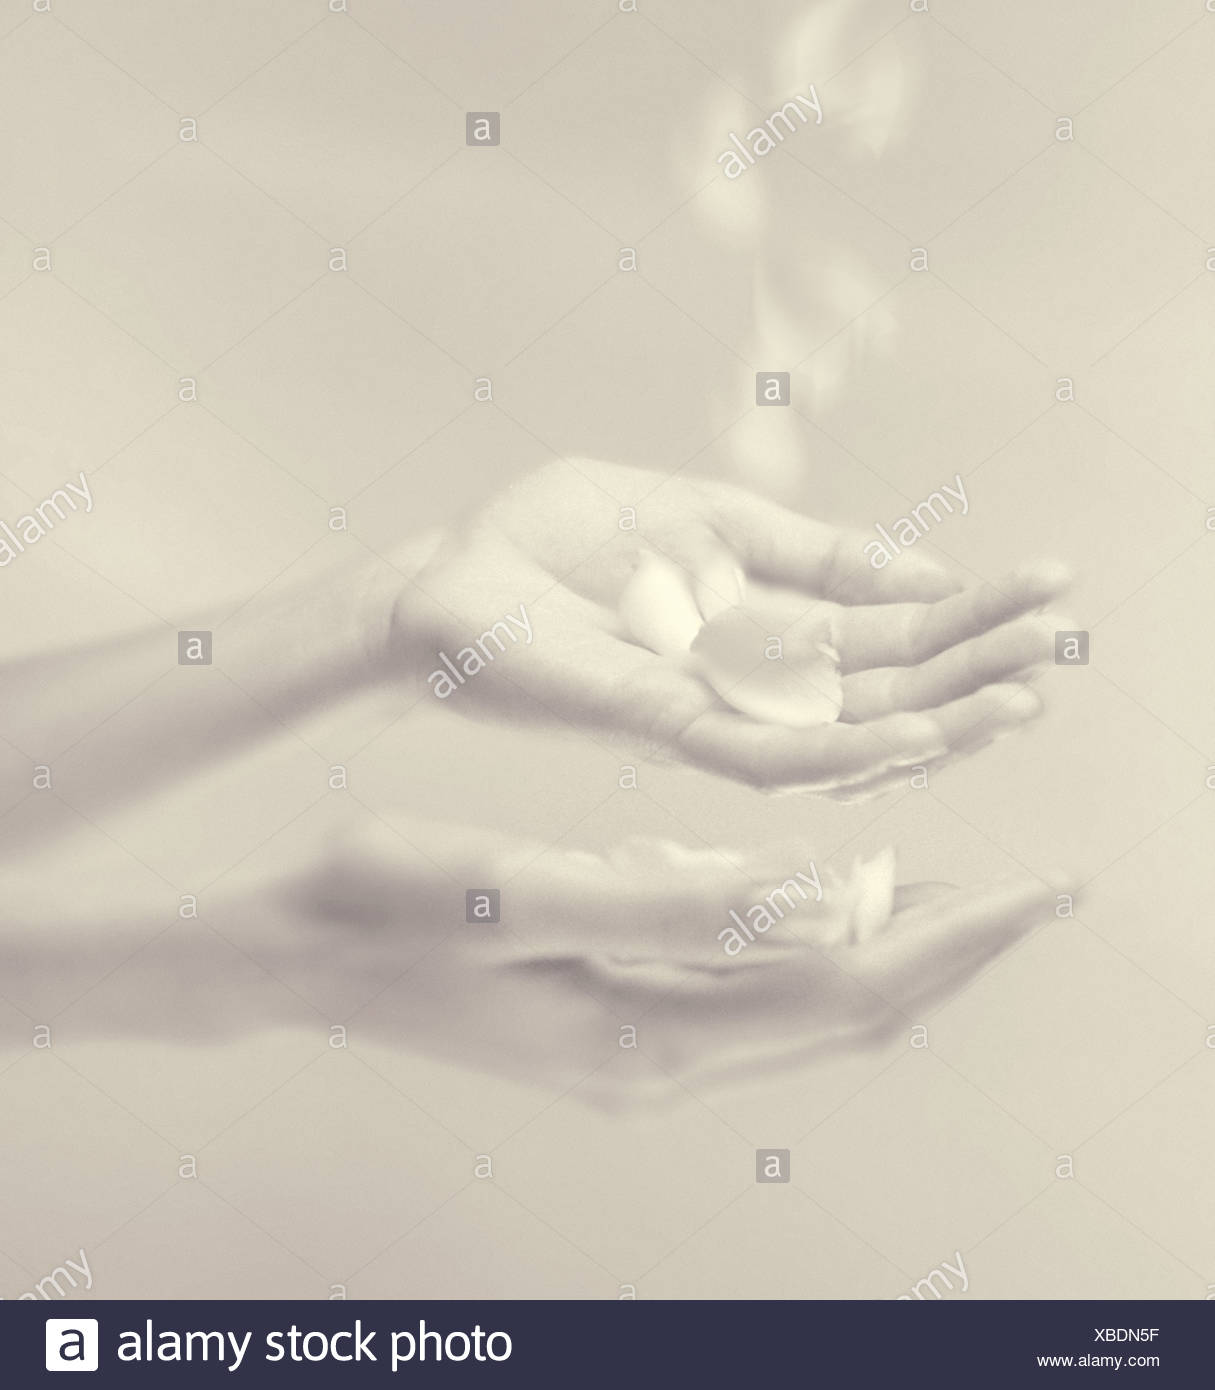 Hands and falling petals - Stock Image